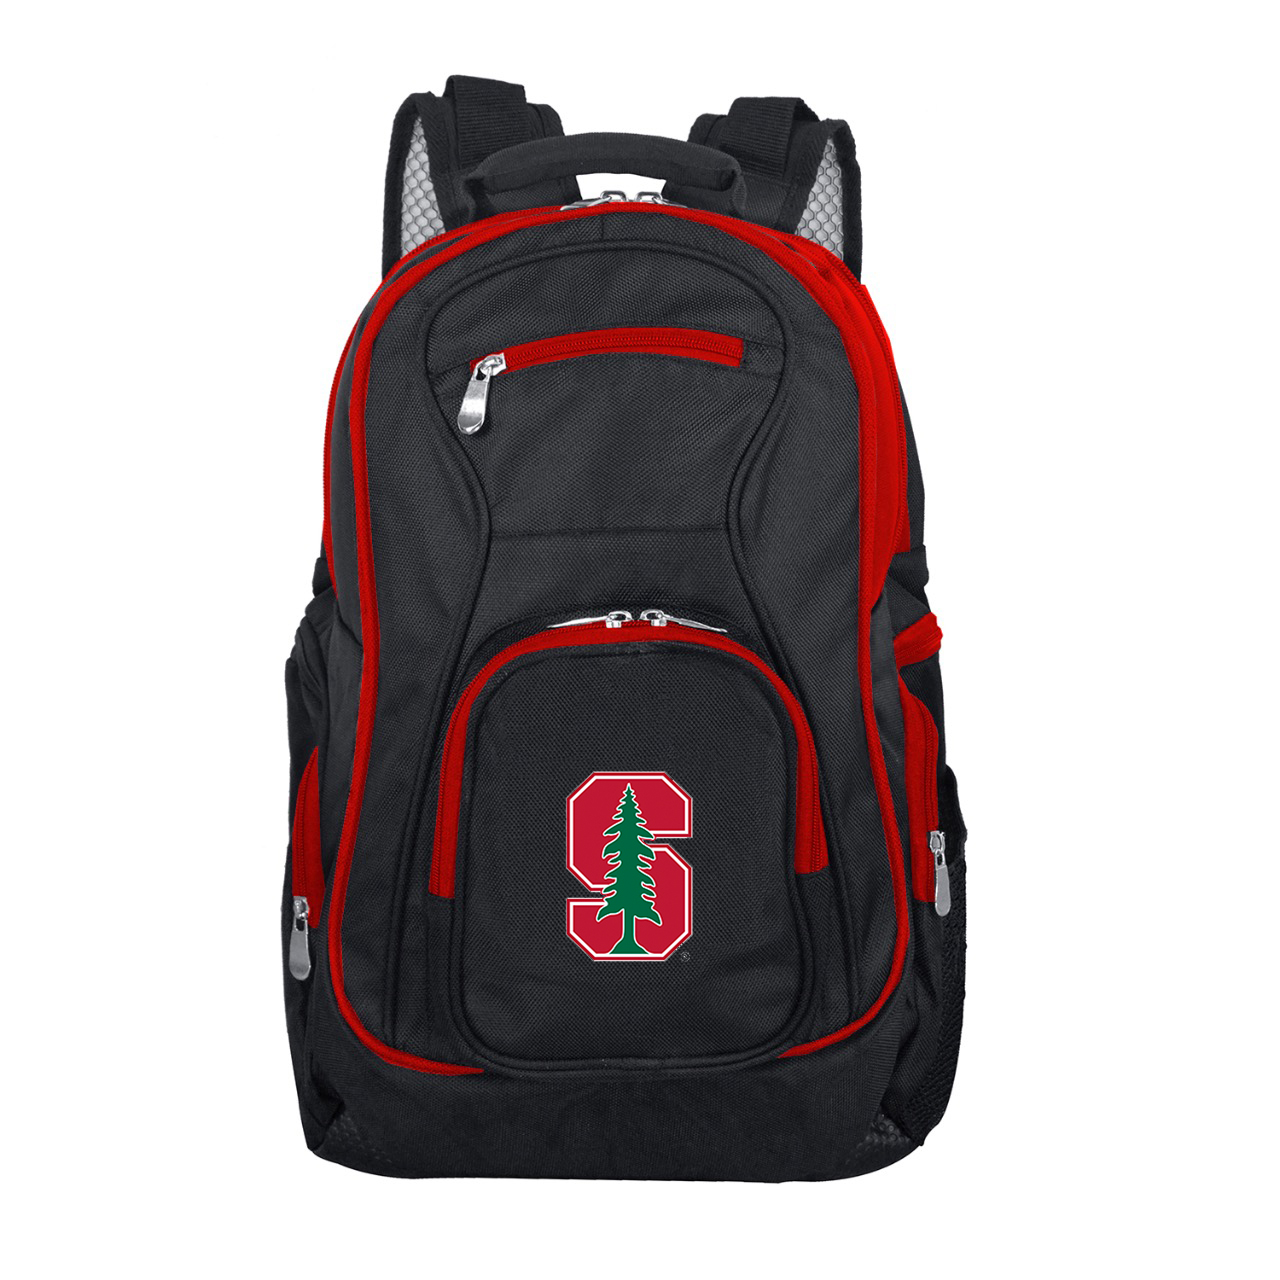 NCAA Stanford Cardinal Premium Laptop Backpack with Colored Trim